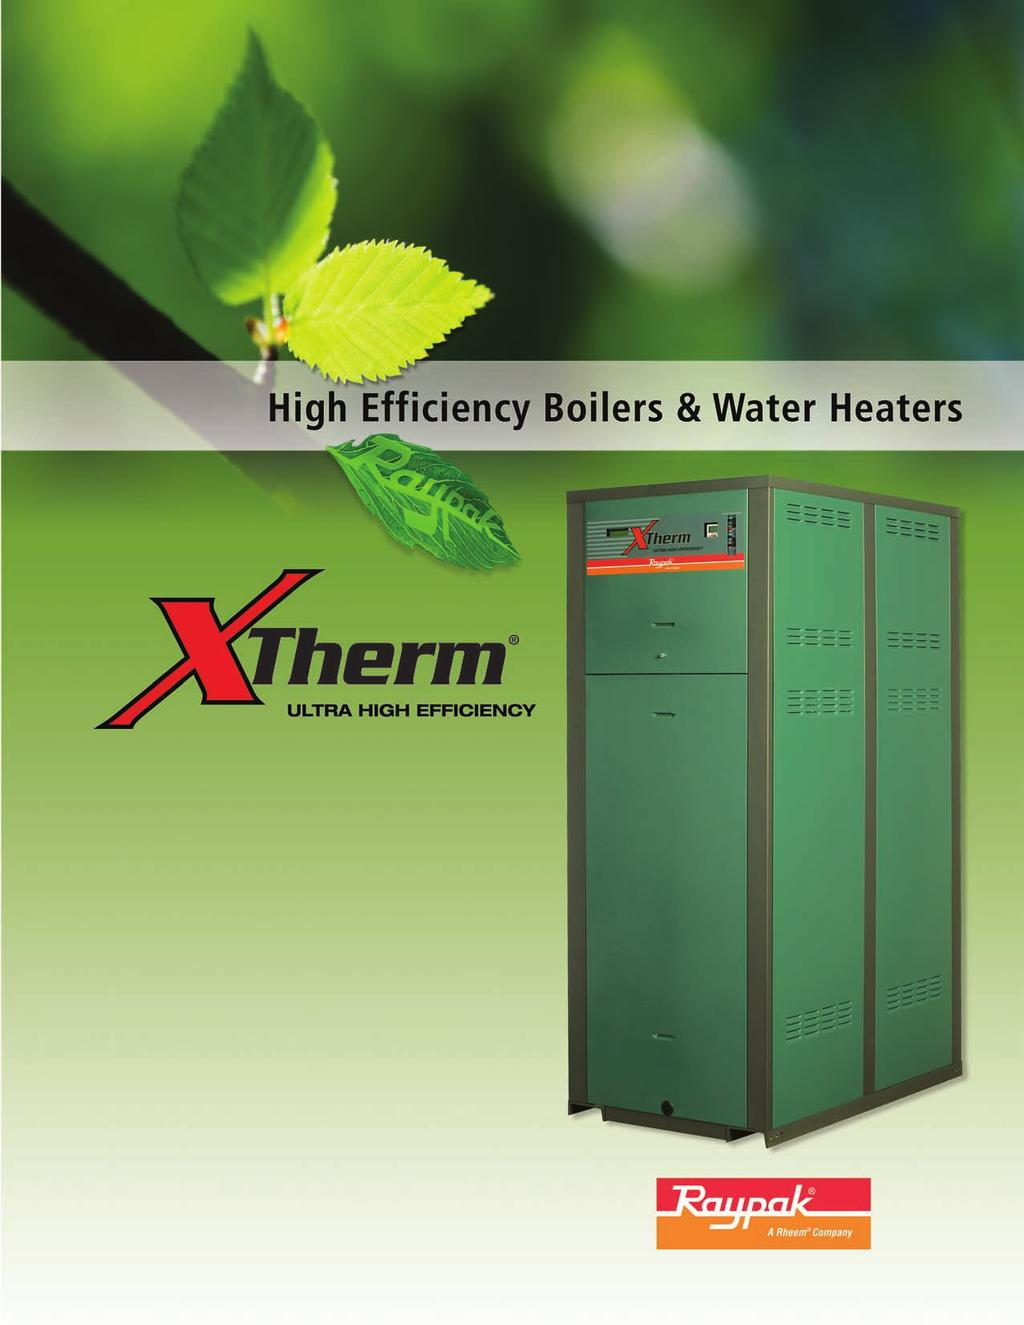 Models 1005, 1505, 2005 Up to 99% thermal efficiency!